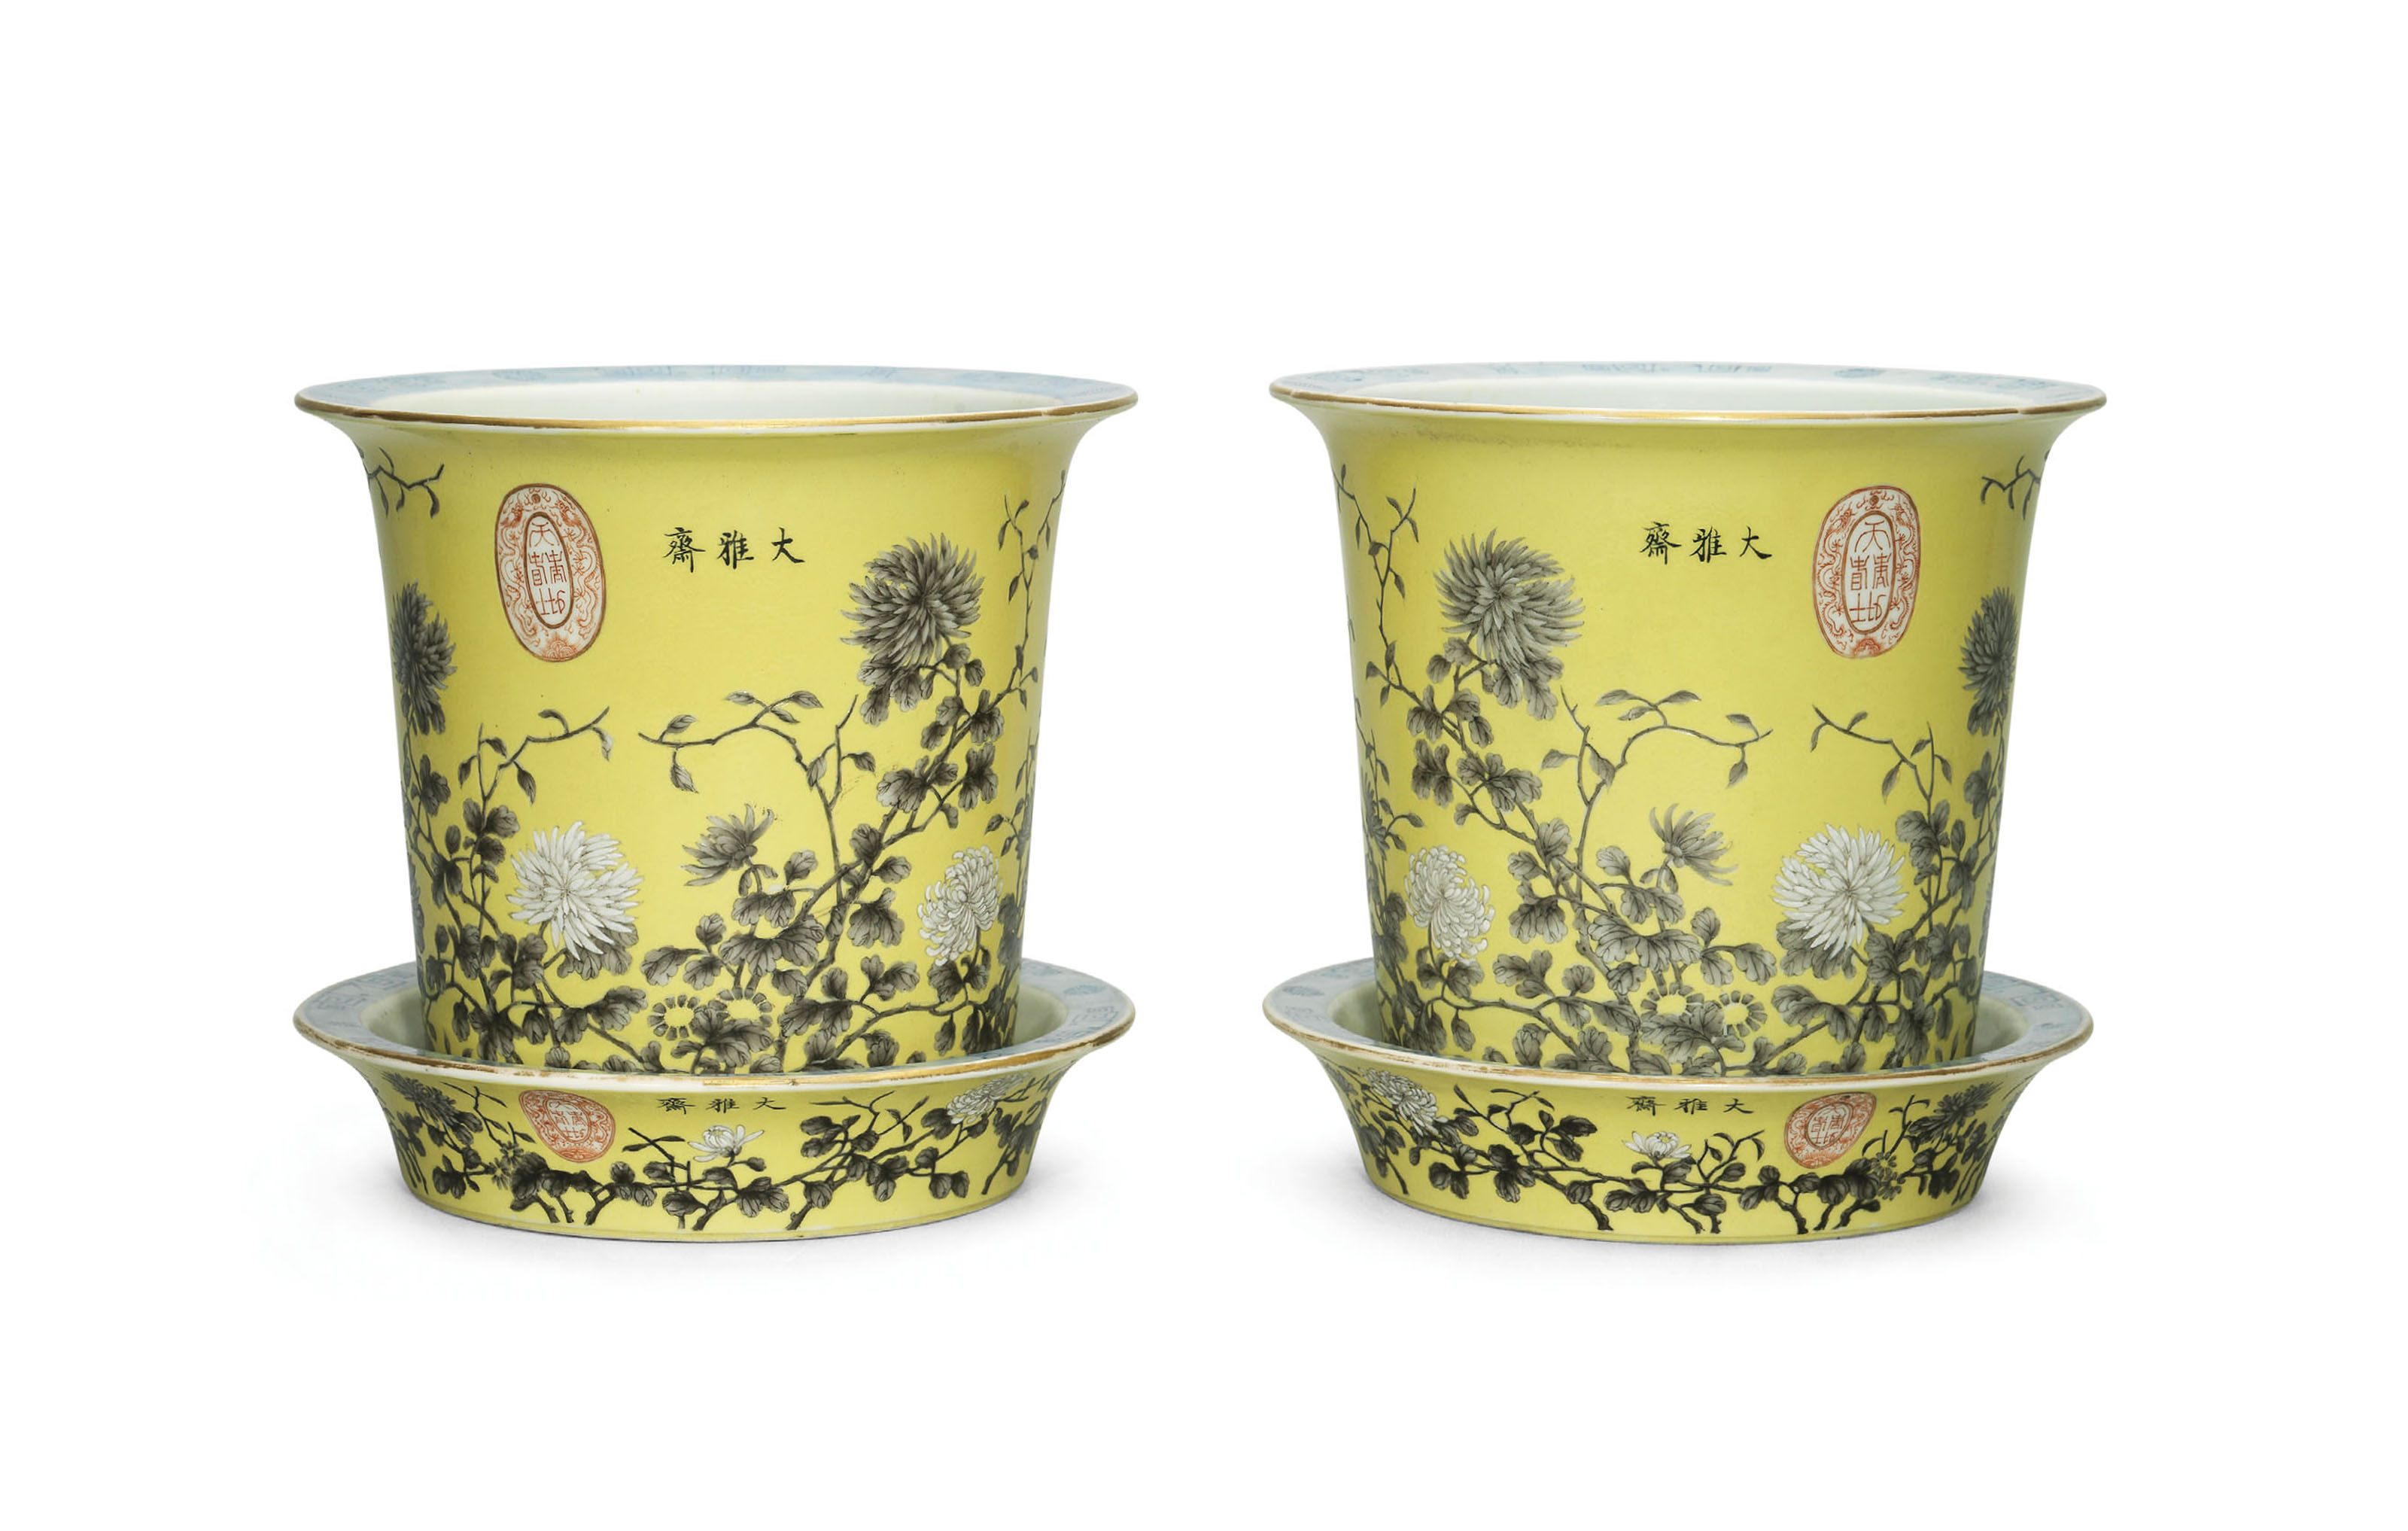 A PAIR OF YELLOW-GROUND GRISAILLE-DECORATED JARDINIERES AND STANDS